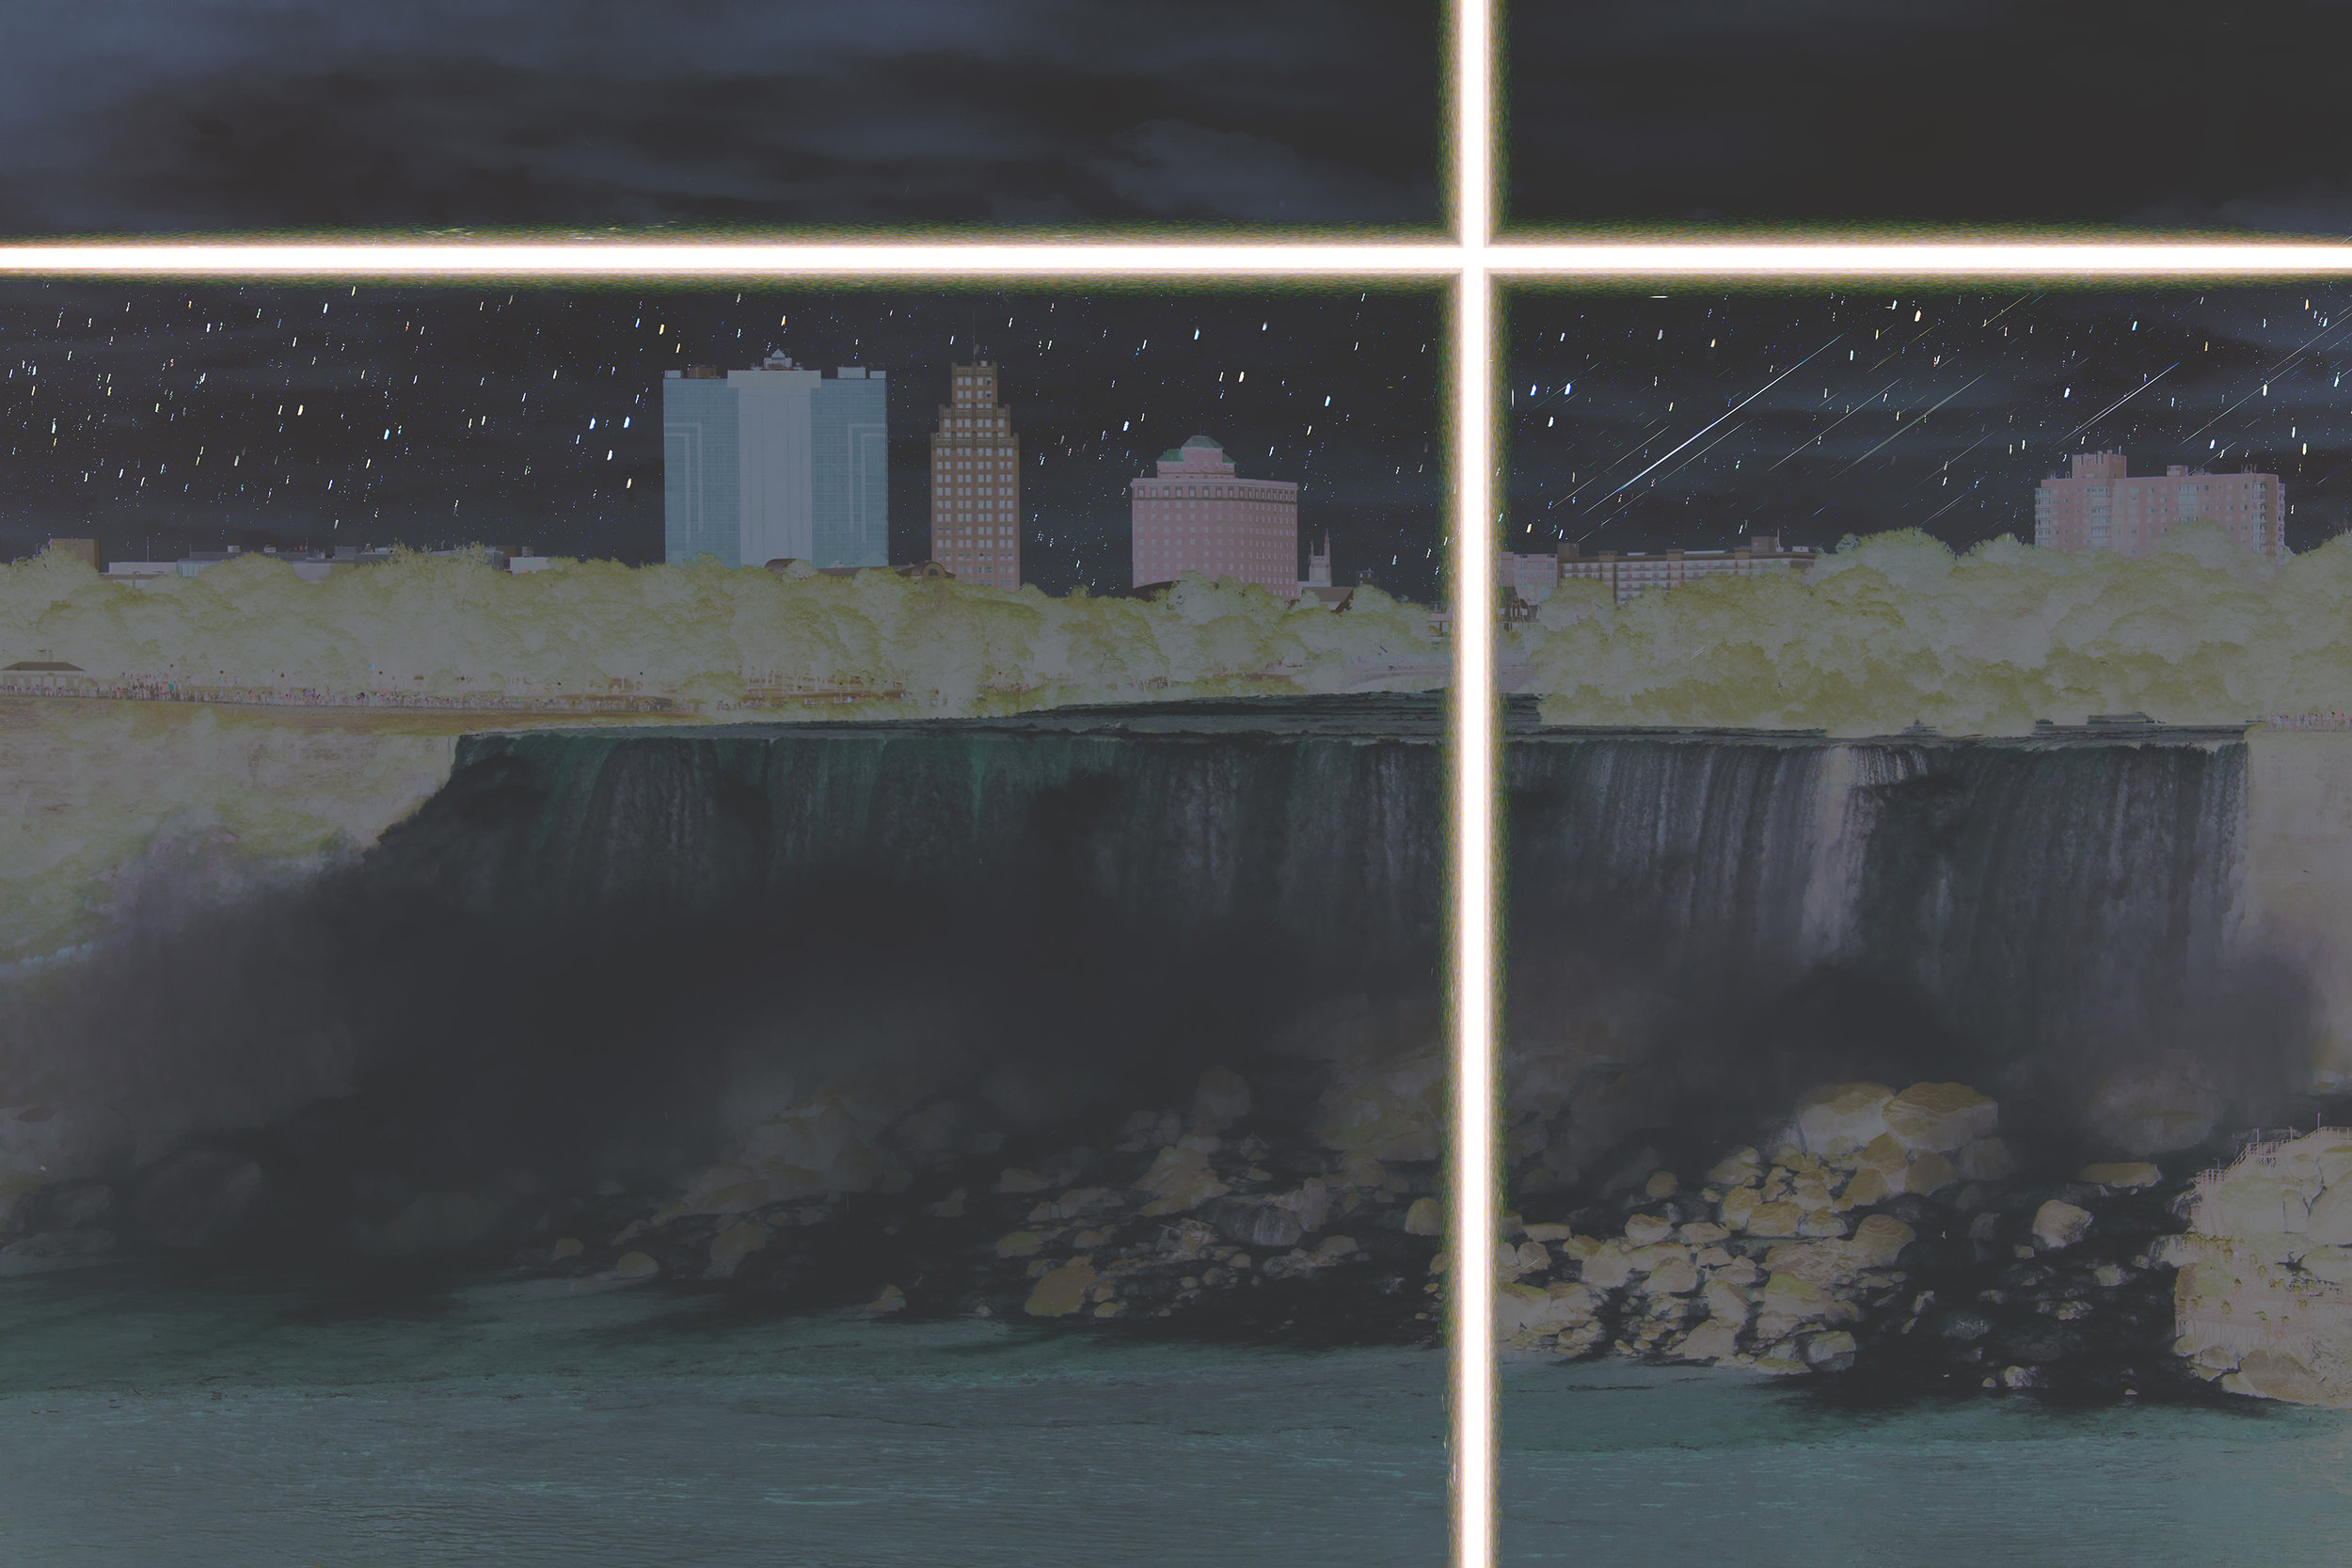 Niagara and Hotel , 40 x 30 inches, 2019  medium format digital with alternative color film process and telescope image